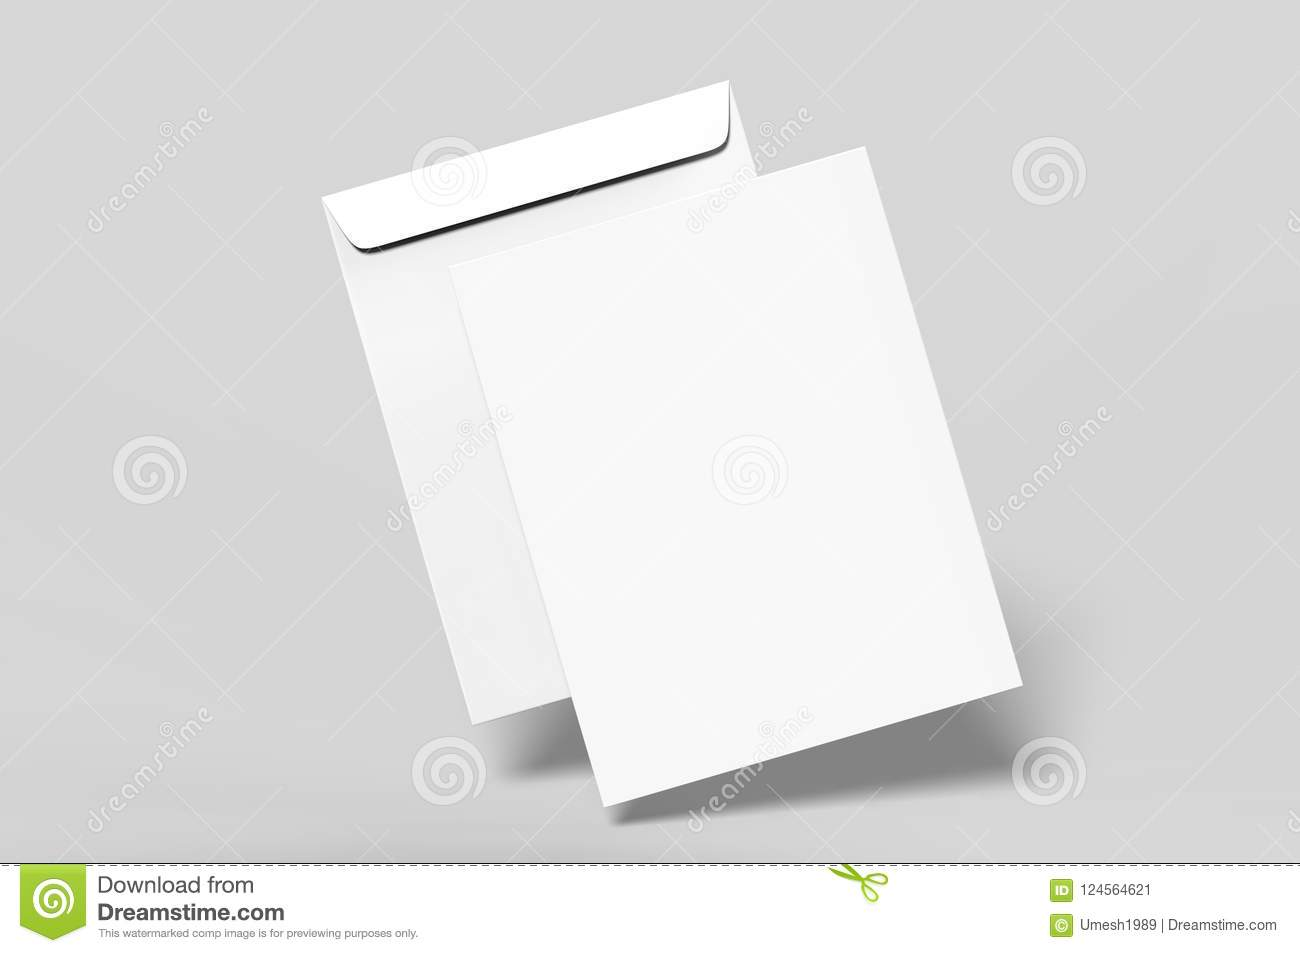 blank c4 envelope mock up blank template 3d render illustration